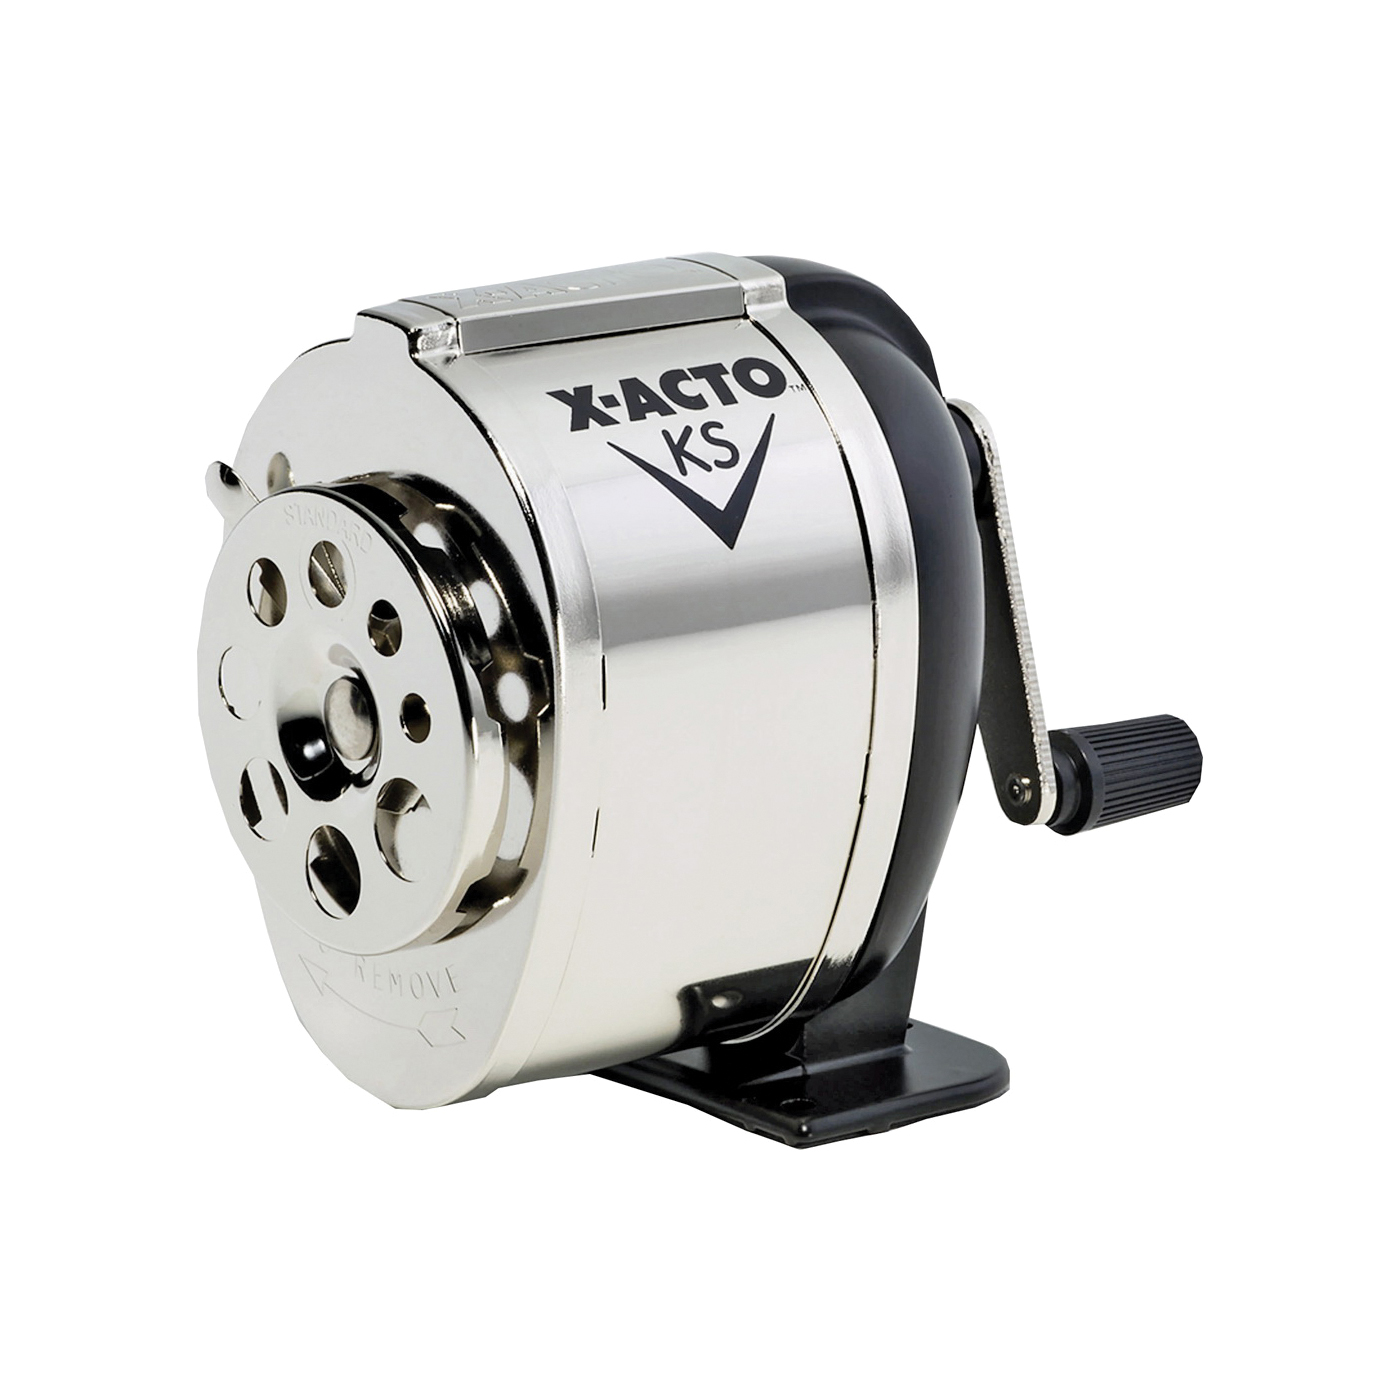 Picture of X-Acto 1031 Pencil Sharpener, Hardened Steel Blade, Metal Housing Material, Black/Chrome Housing